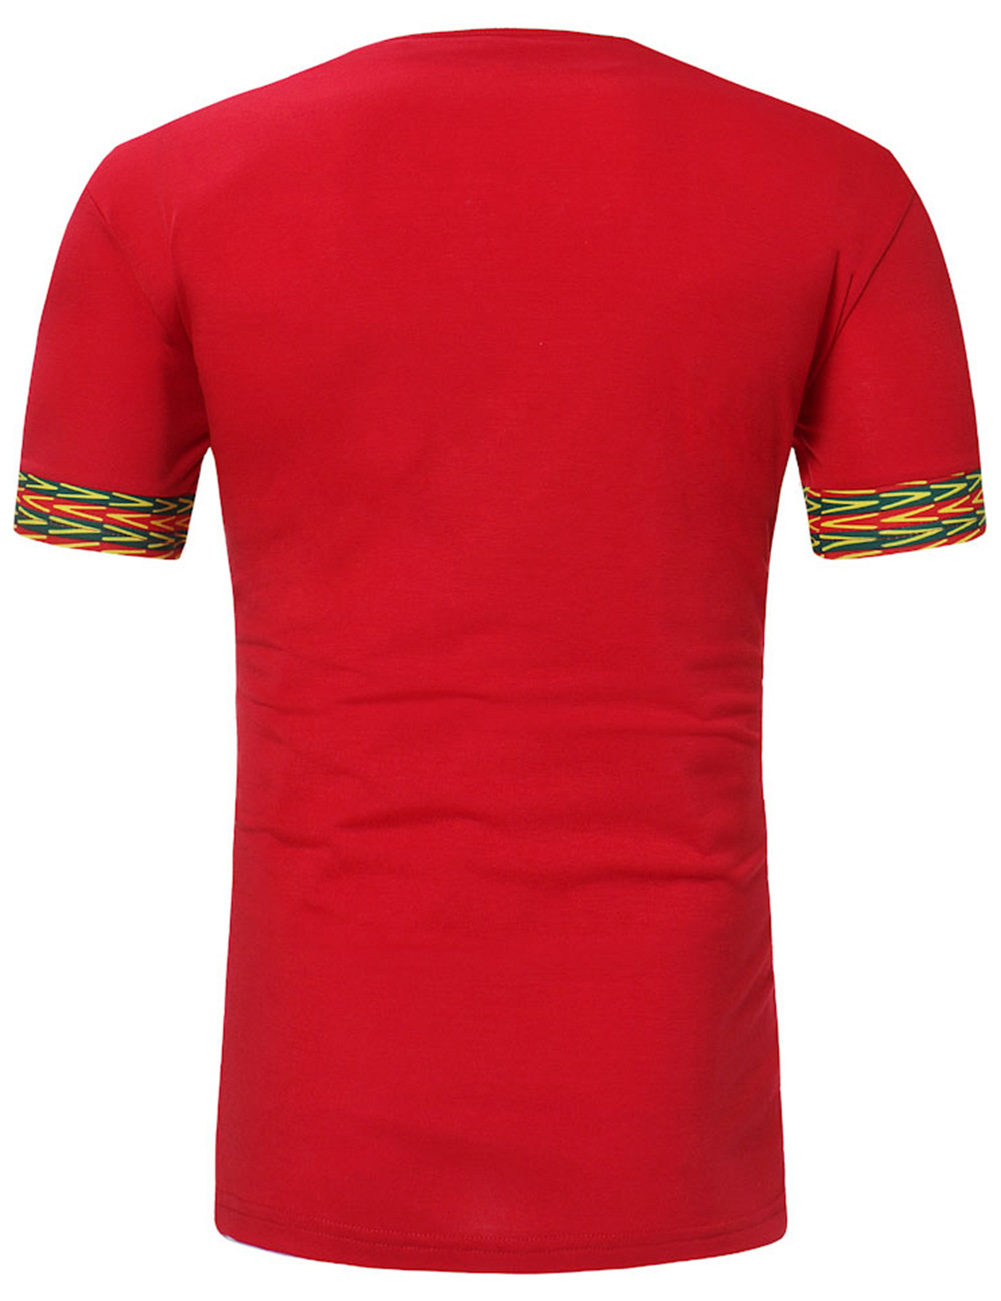 //cdn.affectcloud.com/hexinfashion/upload/imgs/African_Clothing/African_Men_T-shirt/T190098-RD1/T190098-RD1-201911055dc133932108c.jpg